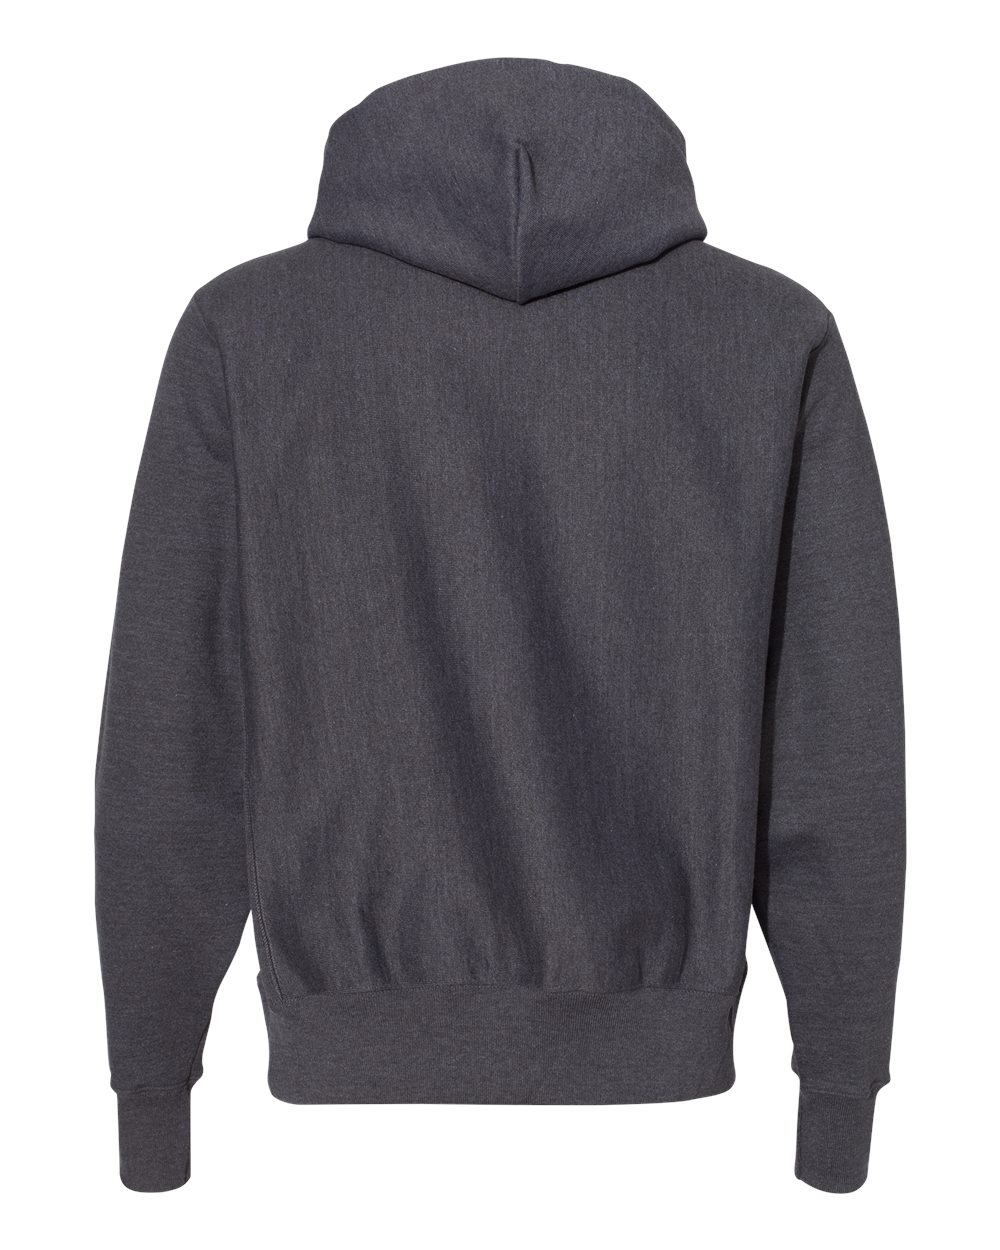 Champion-Mens-Reverse-Weave-Hooded-Pullover-Sweatshirt-S101-up-to-3XL thumbnail 22